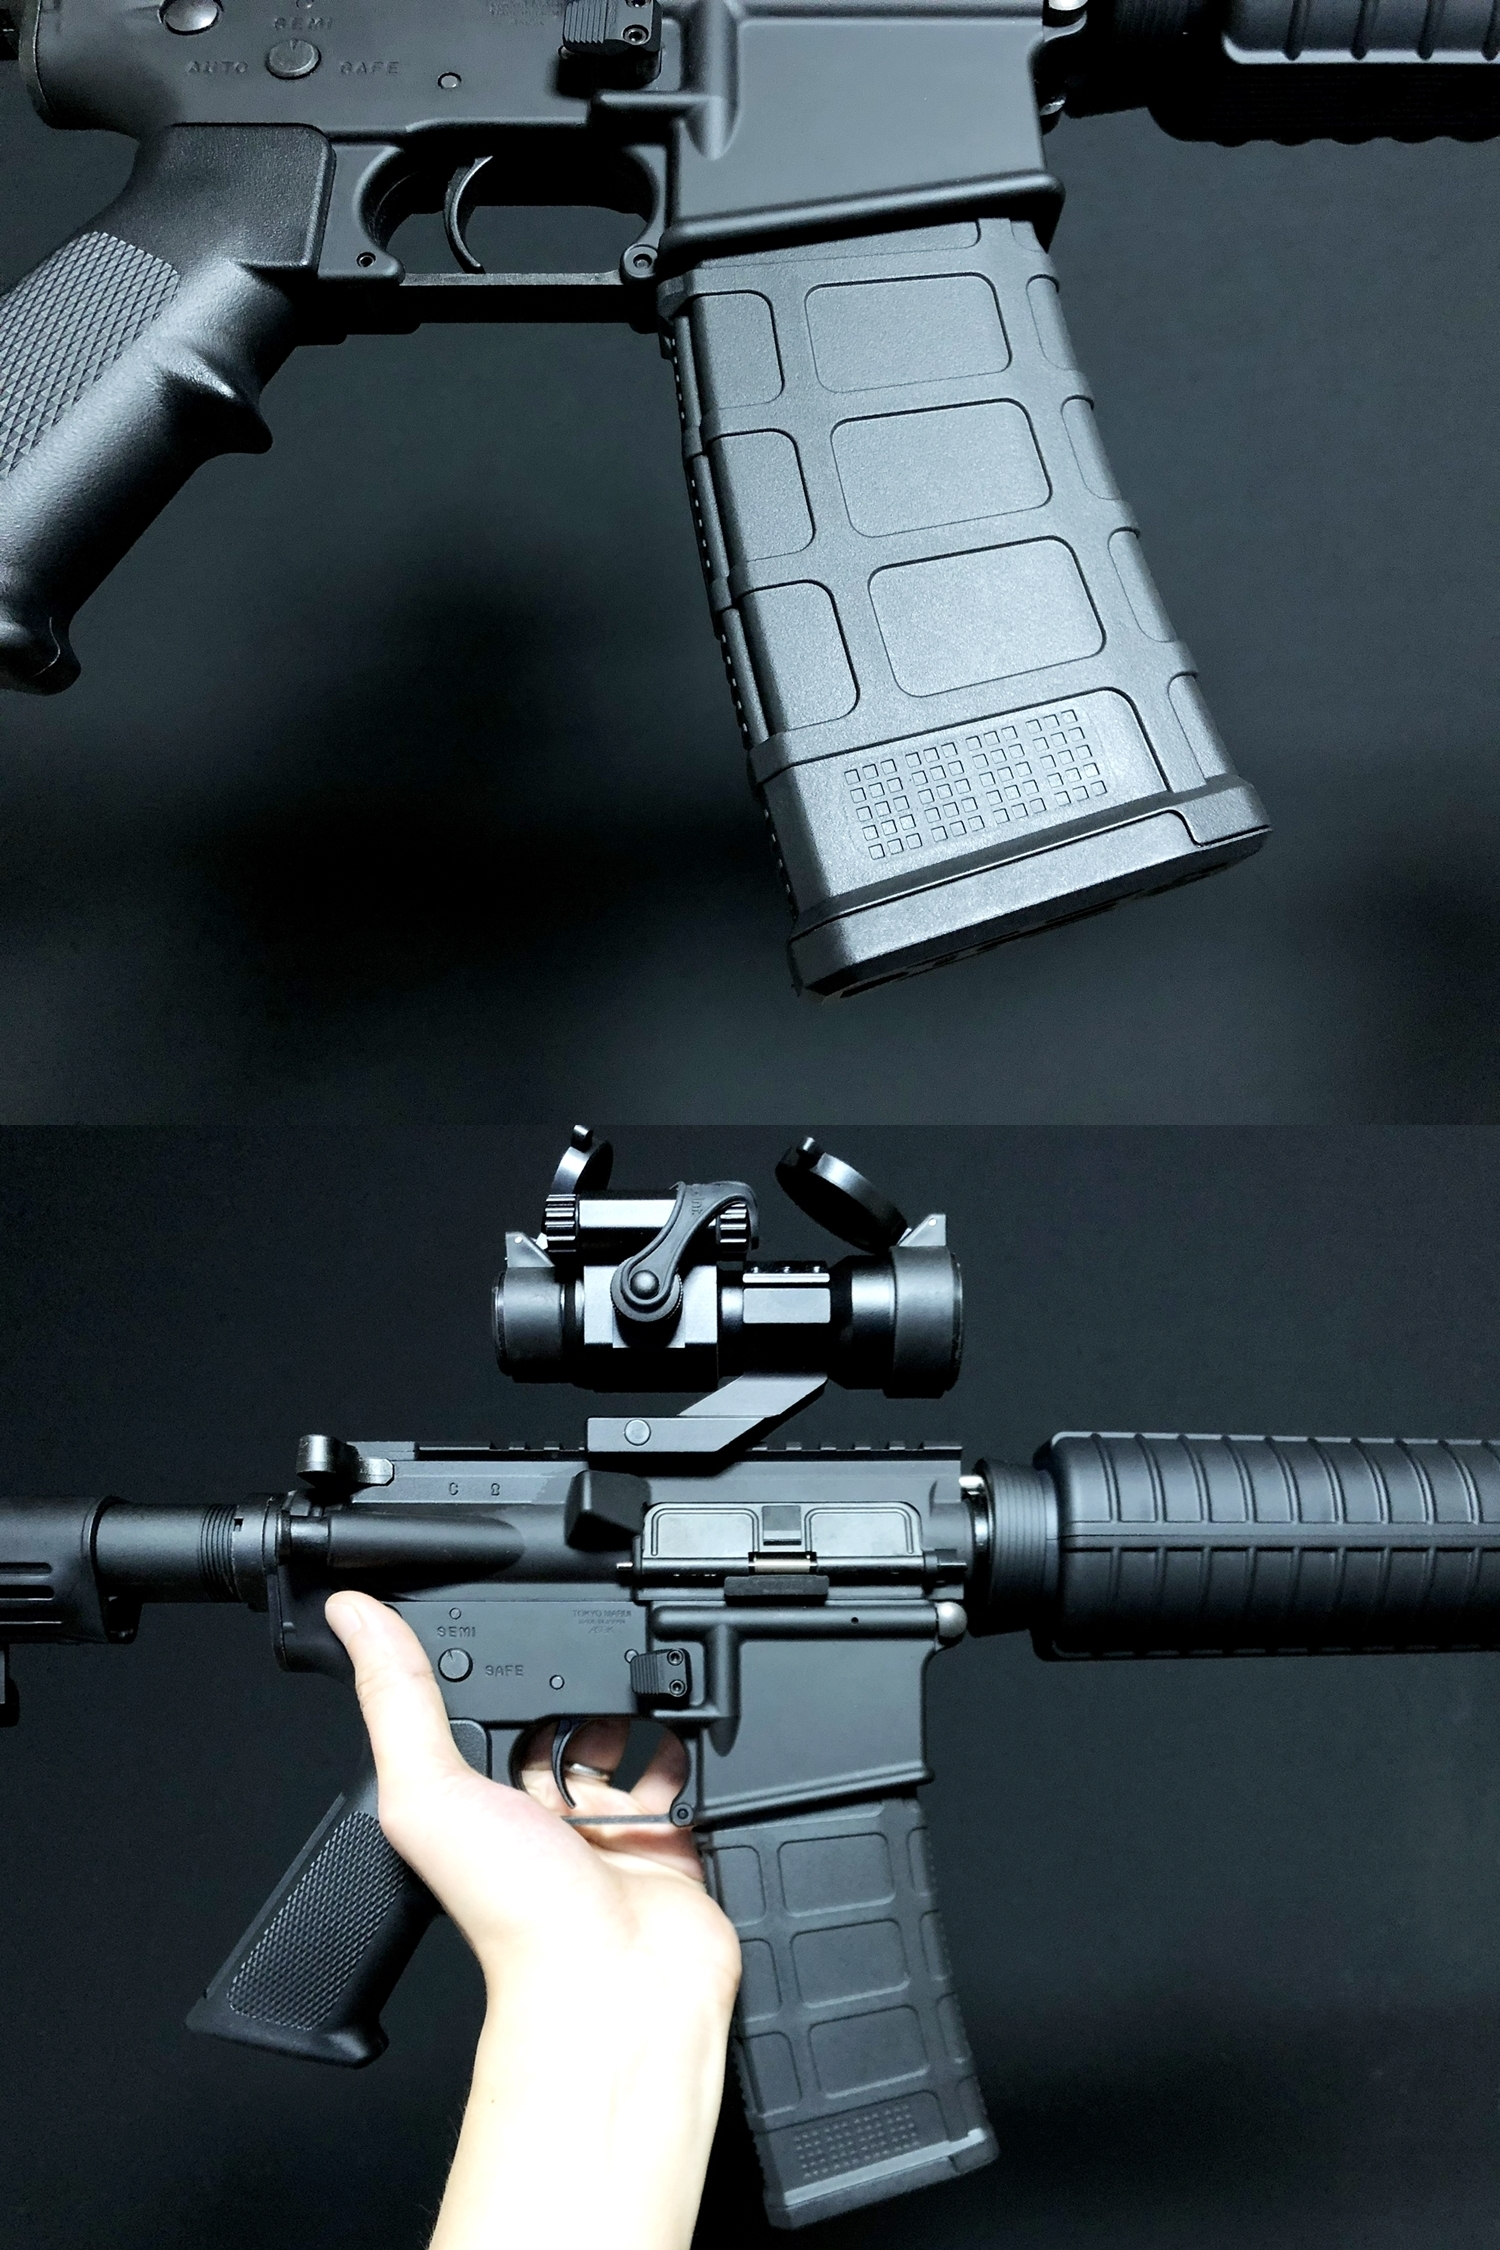 15 MAGPUL TYPE DYTAC ENHANCED AR MAGAZINE RELEASE & ACE 1 ARMS P-MAG FOR MWS GBB!! DEVILSIXさんからお荷物が着弾しました!! HILOG ORIGINAL 3D マグリリースボタン簡易的交換ツール制作!! 購入 開封 取付 検証